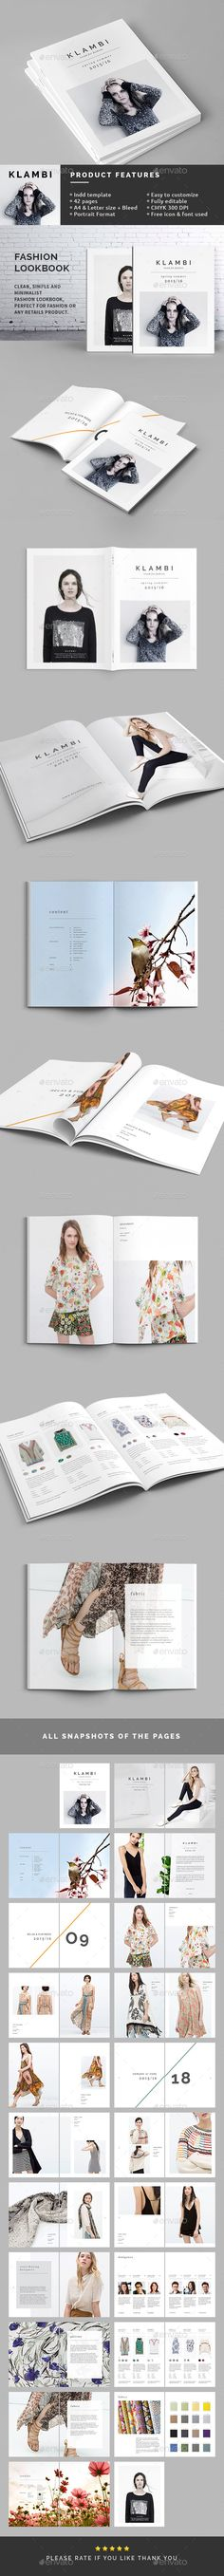 Fashion Lookbook Catalog Brochure Template InDesign INDD. Download here: http://graphicriver.net/item/fashion-lookbook/11401509?s_rank=30&ref=yinkira